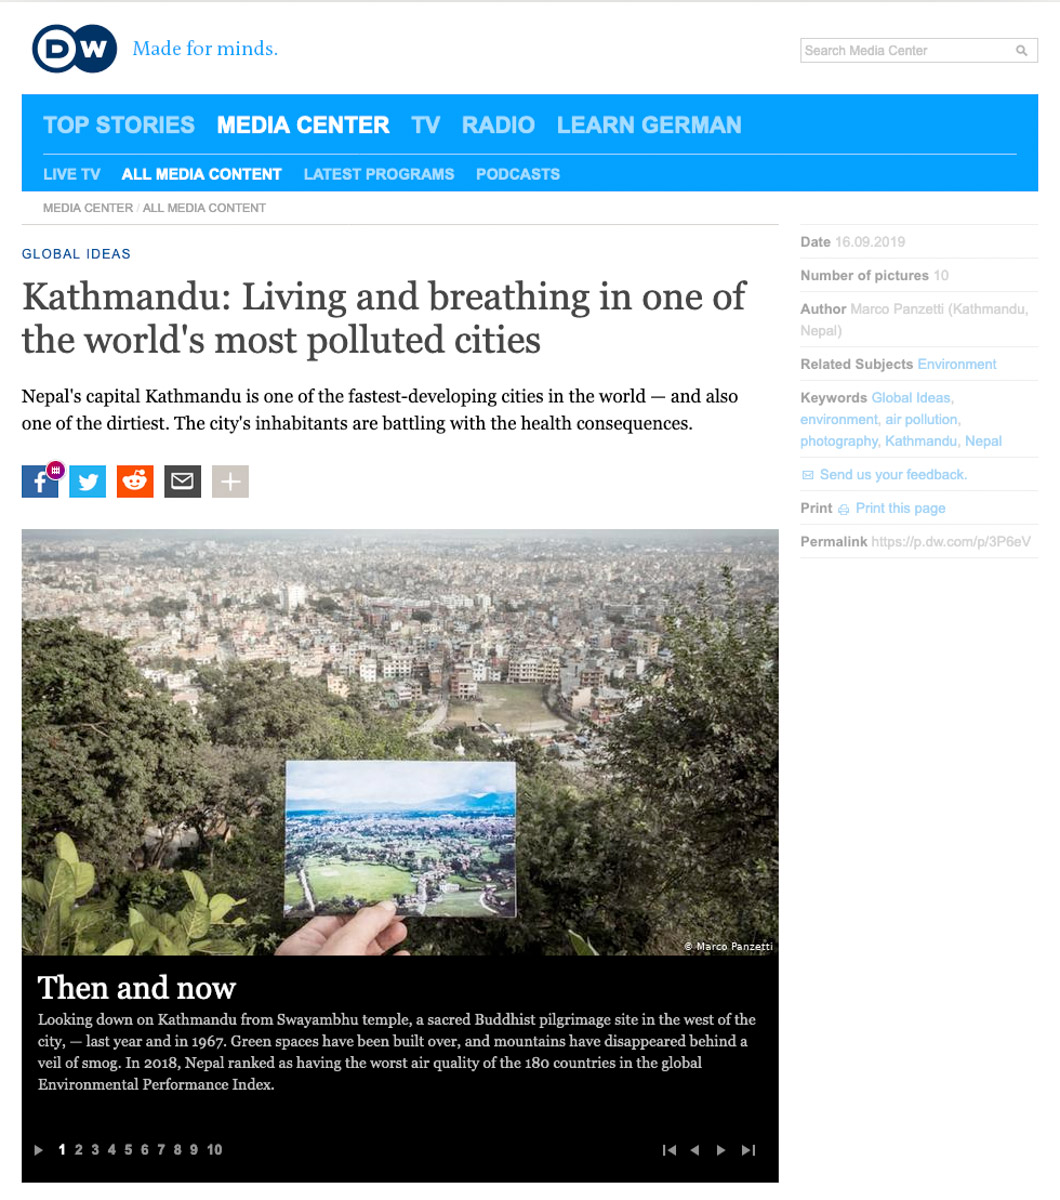 Publication in Deutsche Welle - Kathmandu: Living and breathing in one of the world's most polluted cities